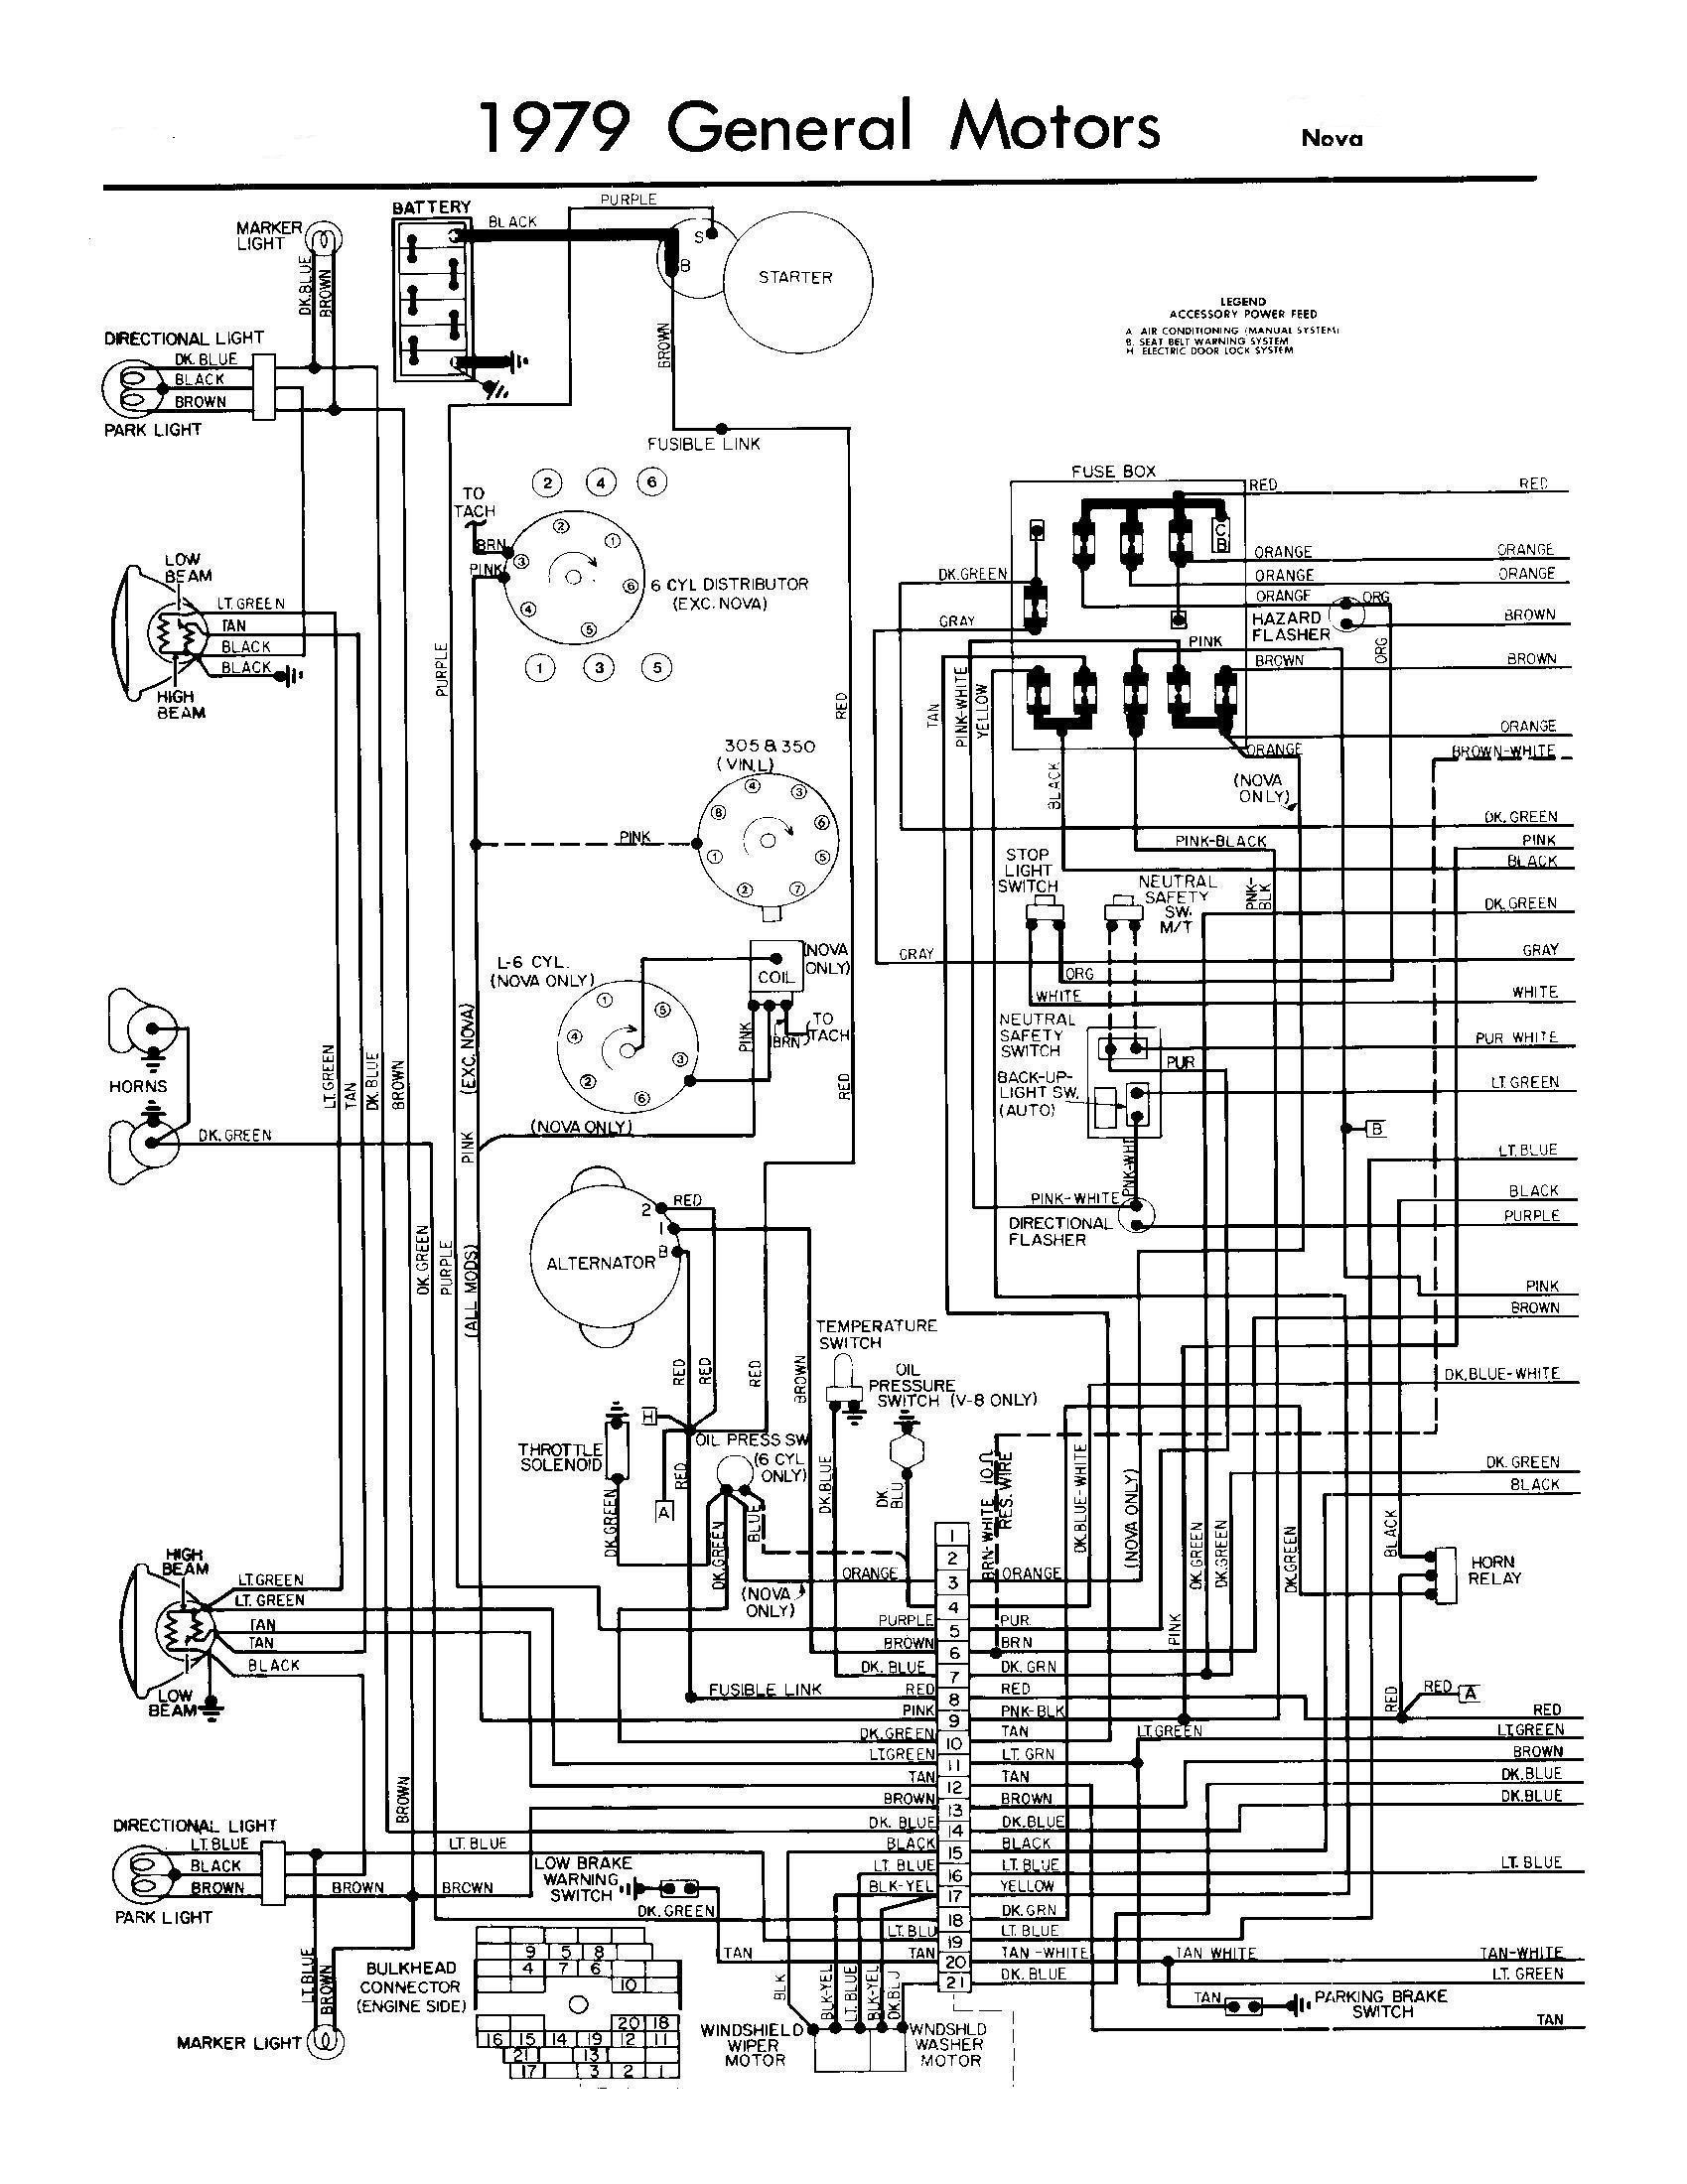 1989 gmc sierra alternator wiring wiring diagrams favorites 1989 gmc sierra alternator wiring wiring diagram load 1989 gmc sierra alternator wiring